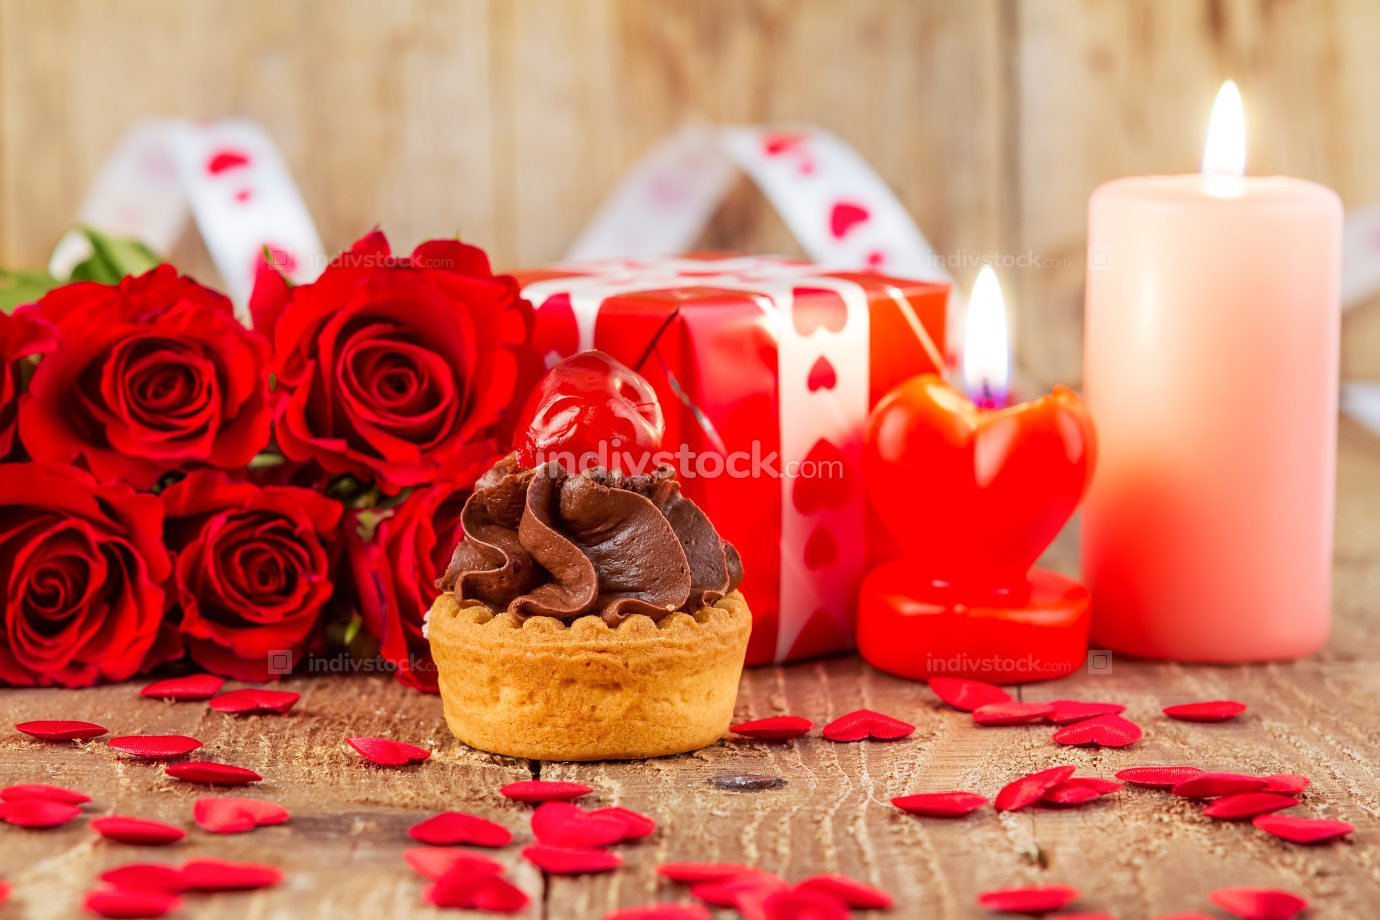 Cupcake with cherry in front of bouquet of red roses and cadles